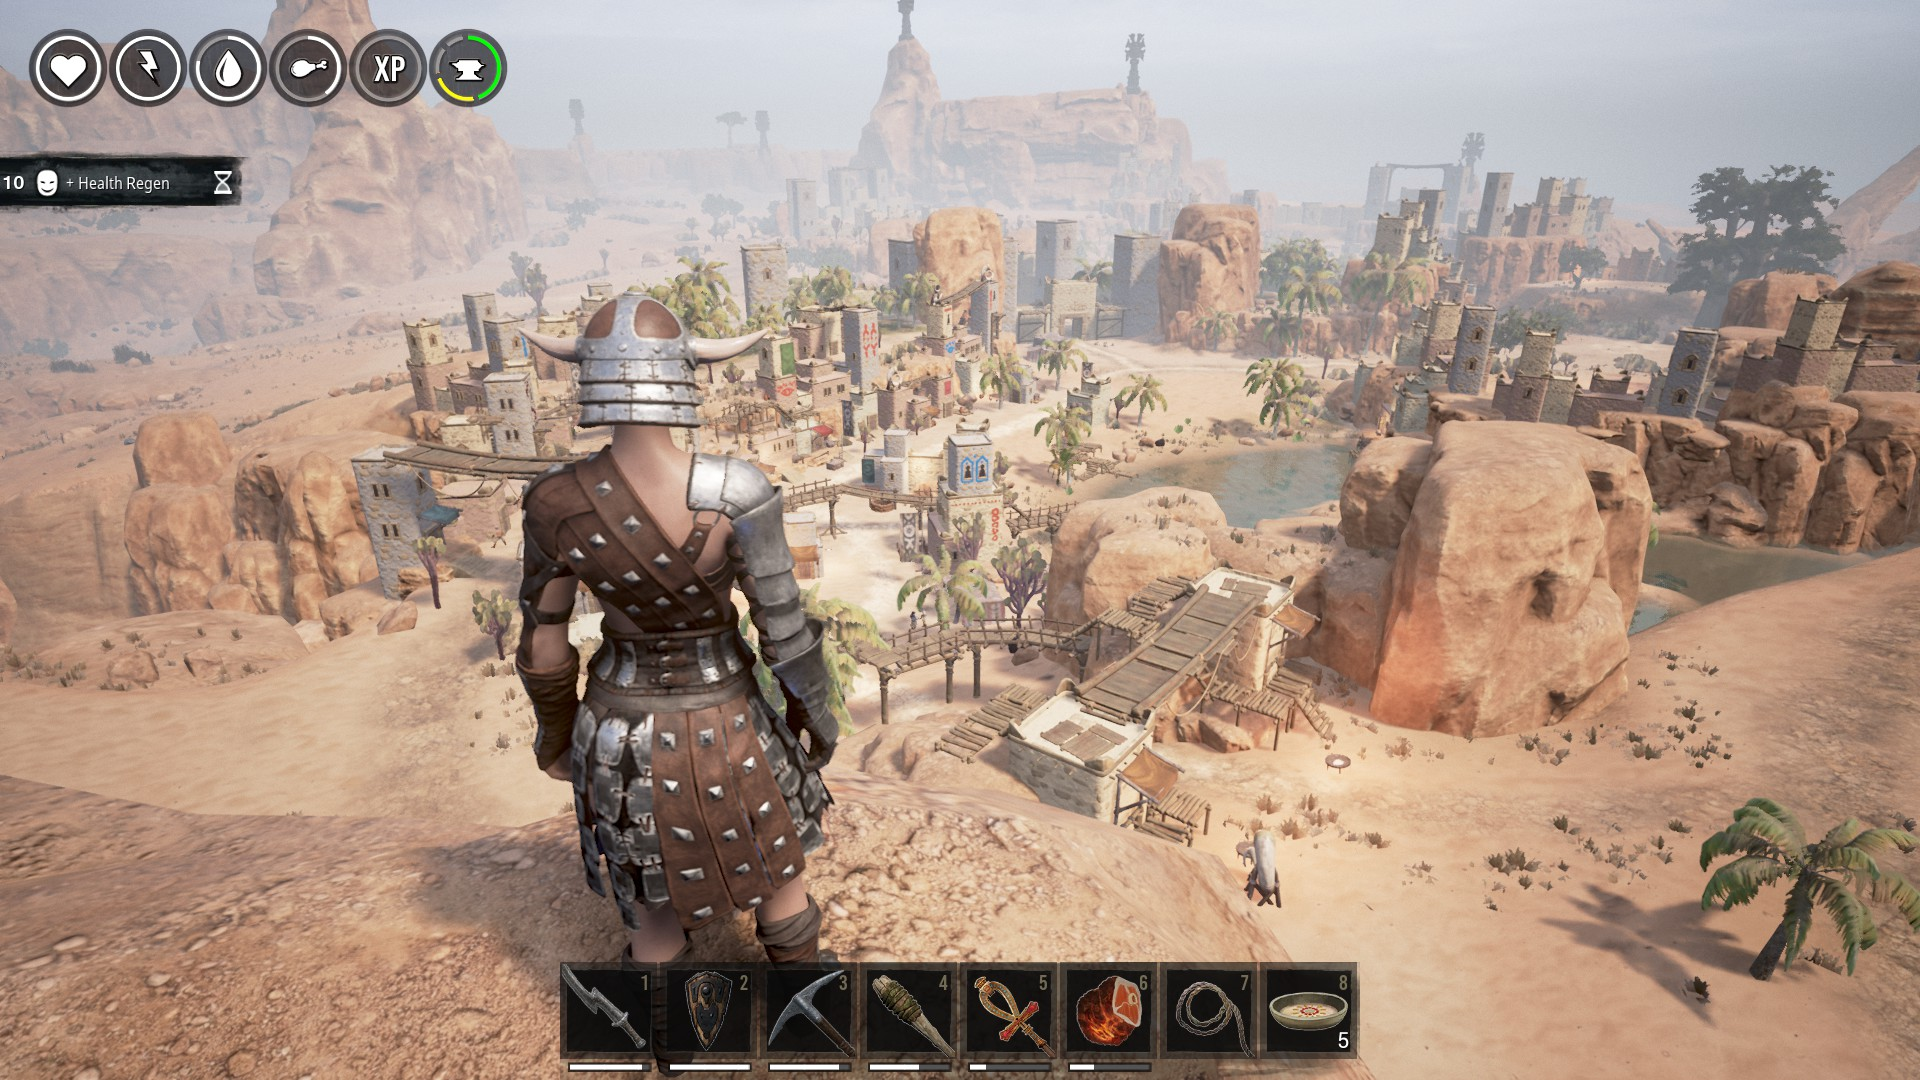 Cool base we built in Conan Exiles